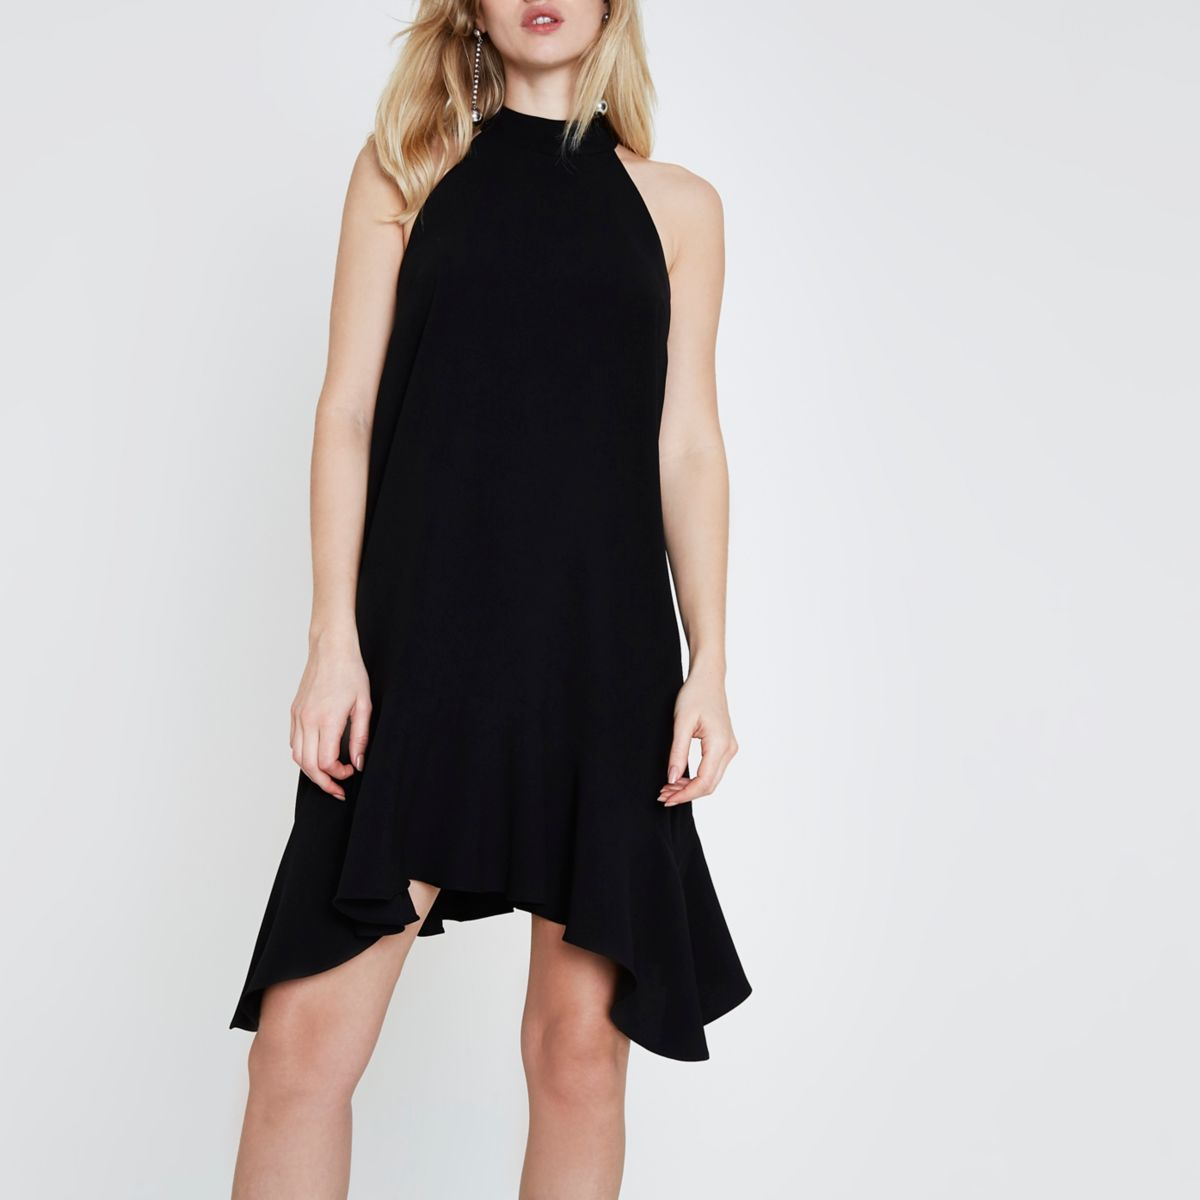 Black high neck frill swing dress